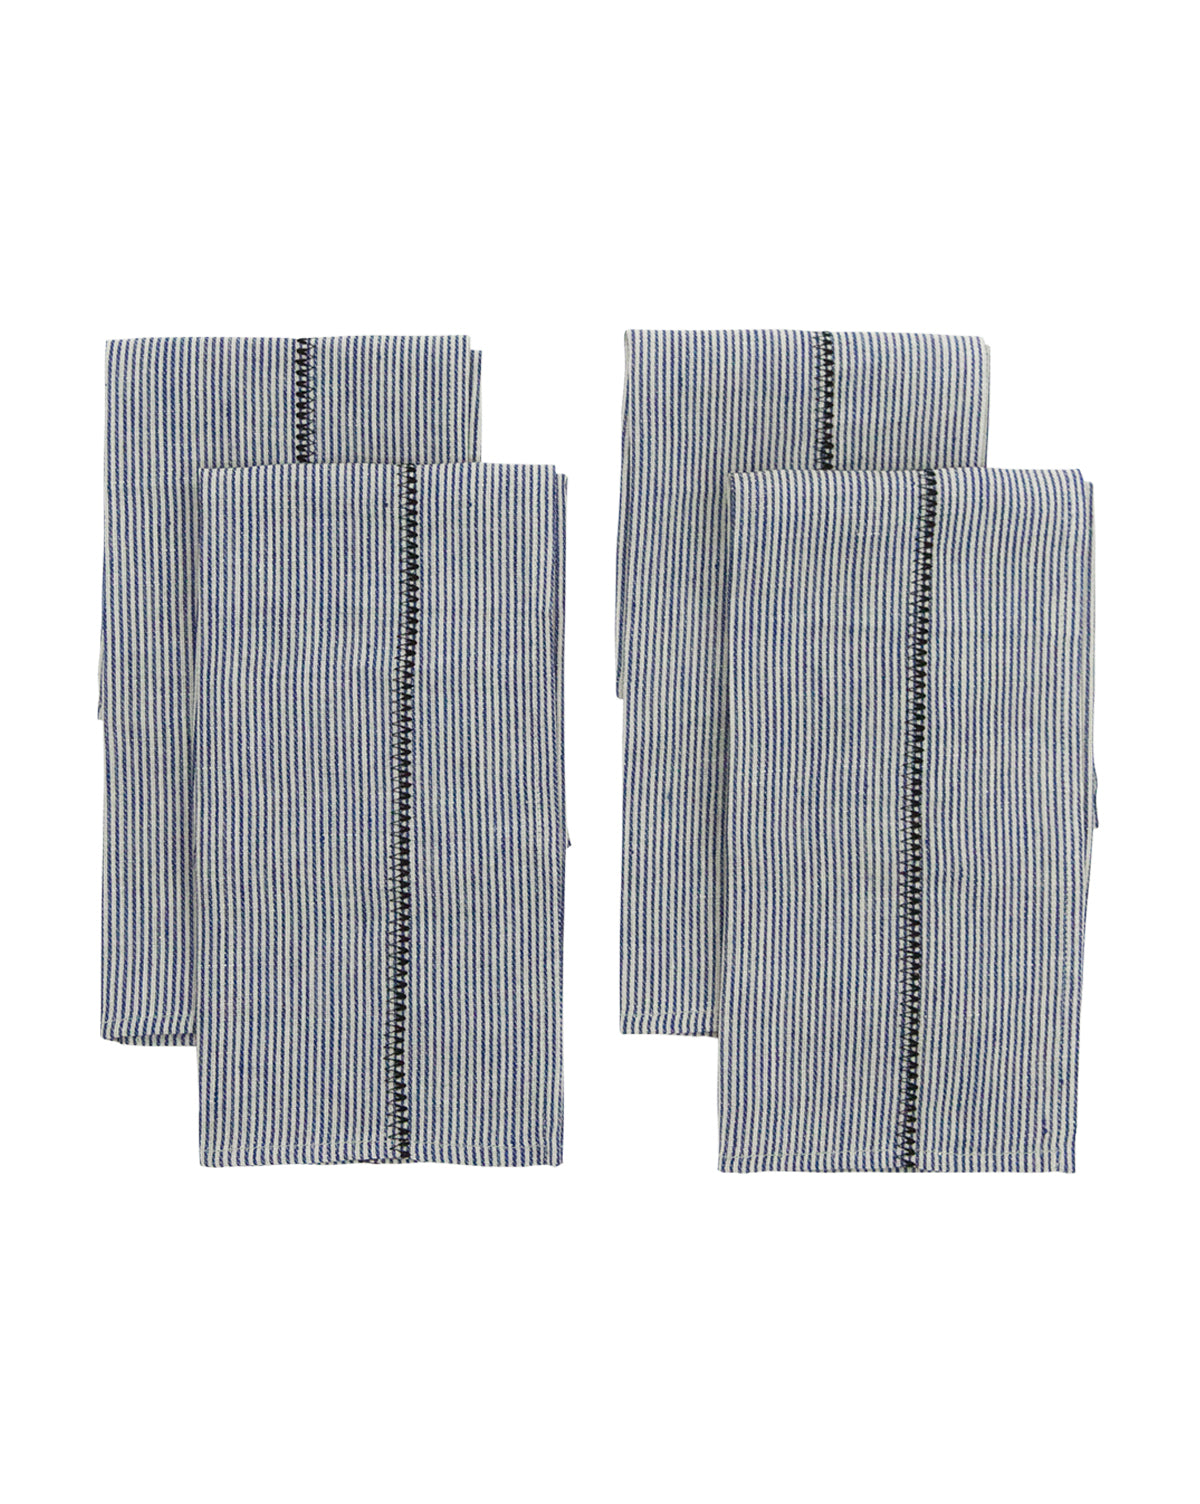 Chambray Stripe Napkins (Set of 4)